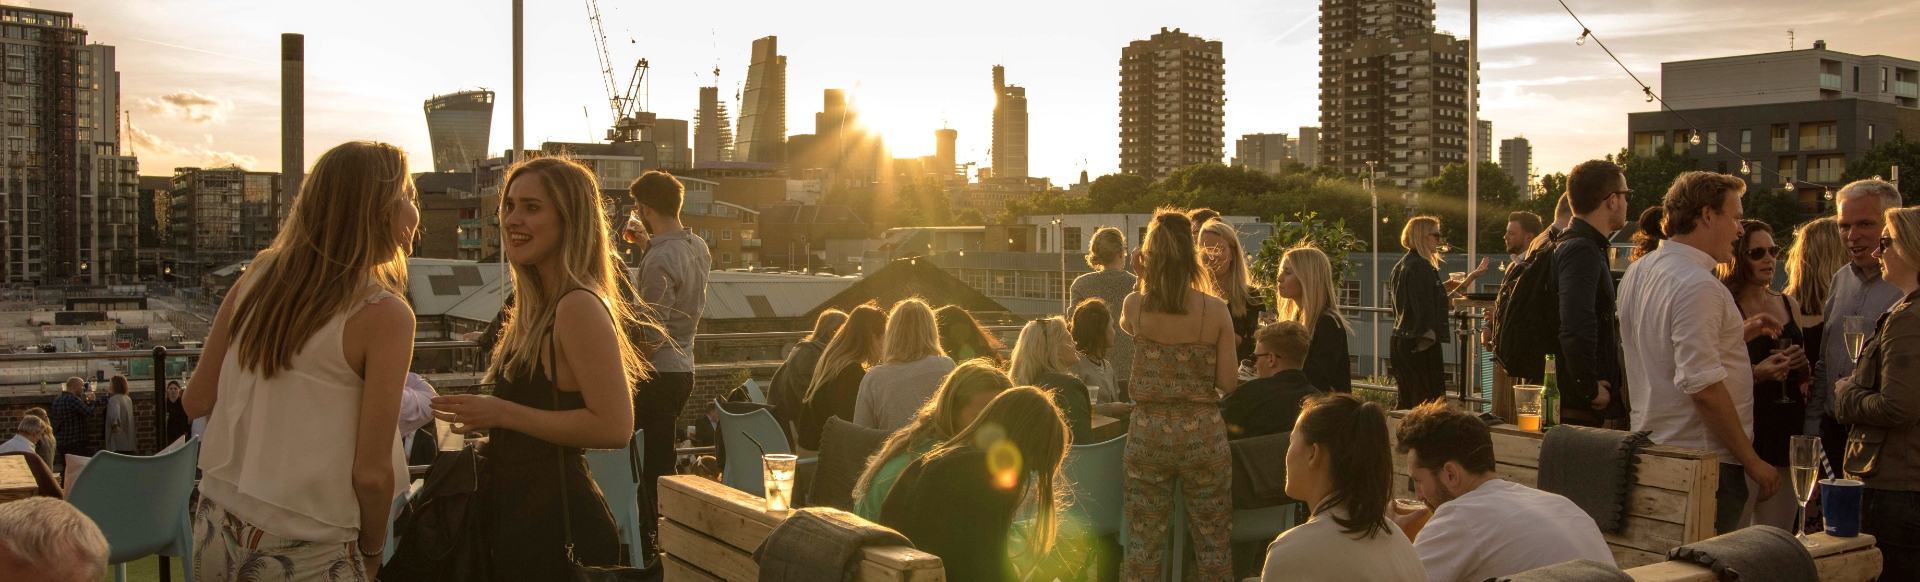 People are socialising in a rooftop bar